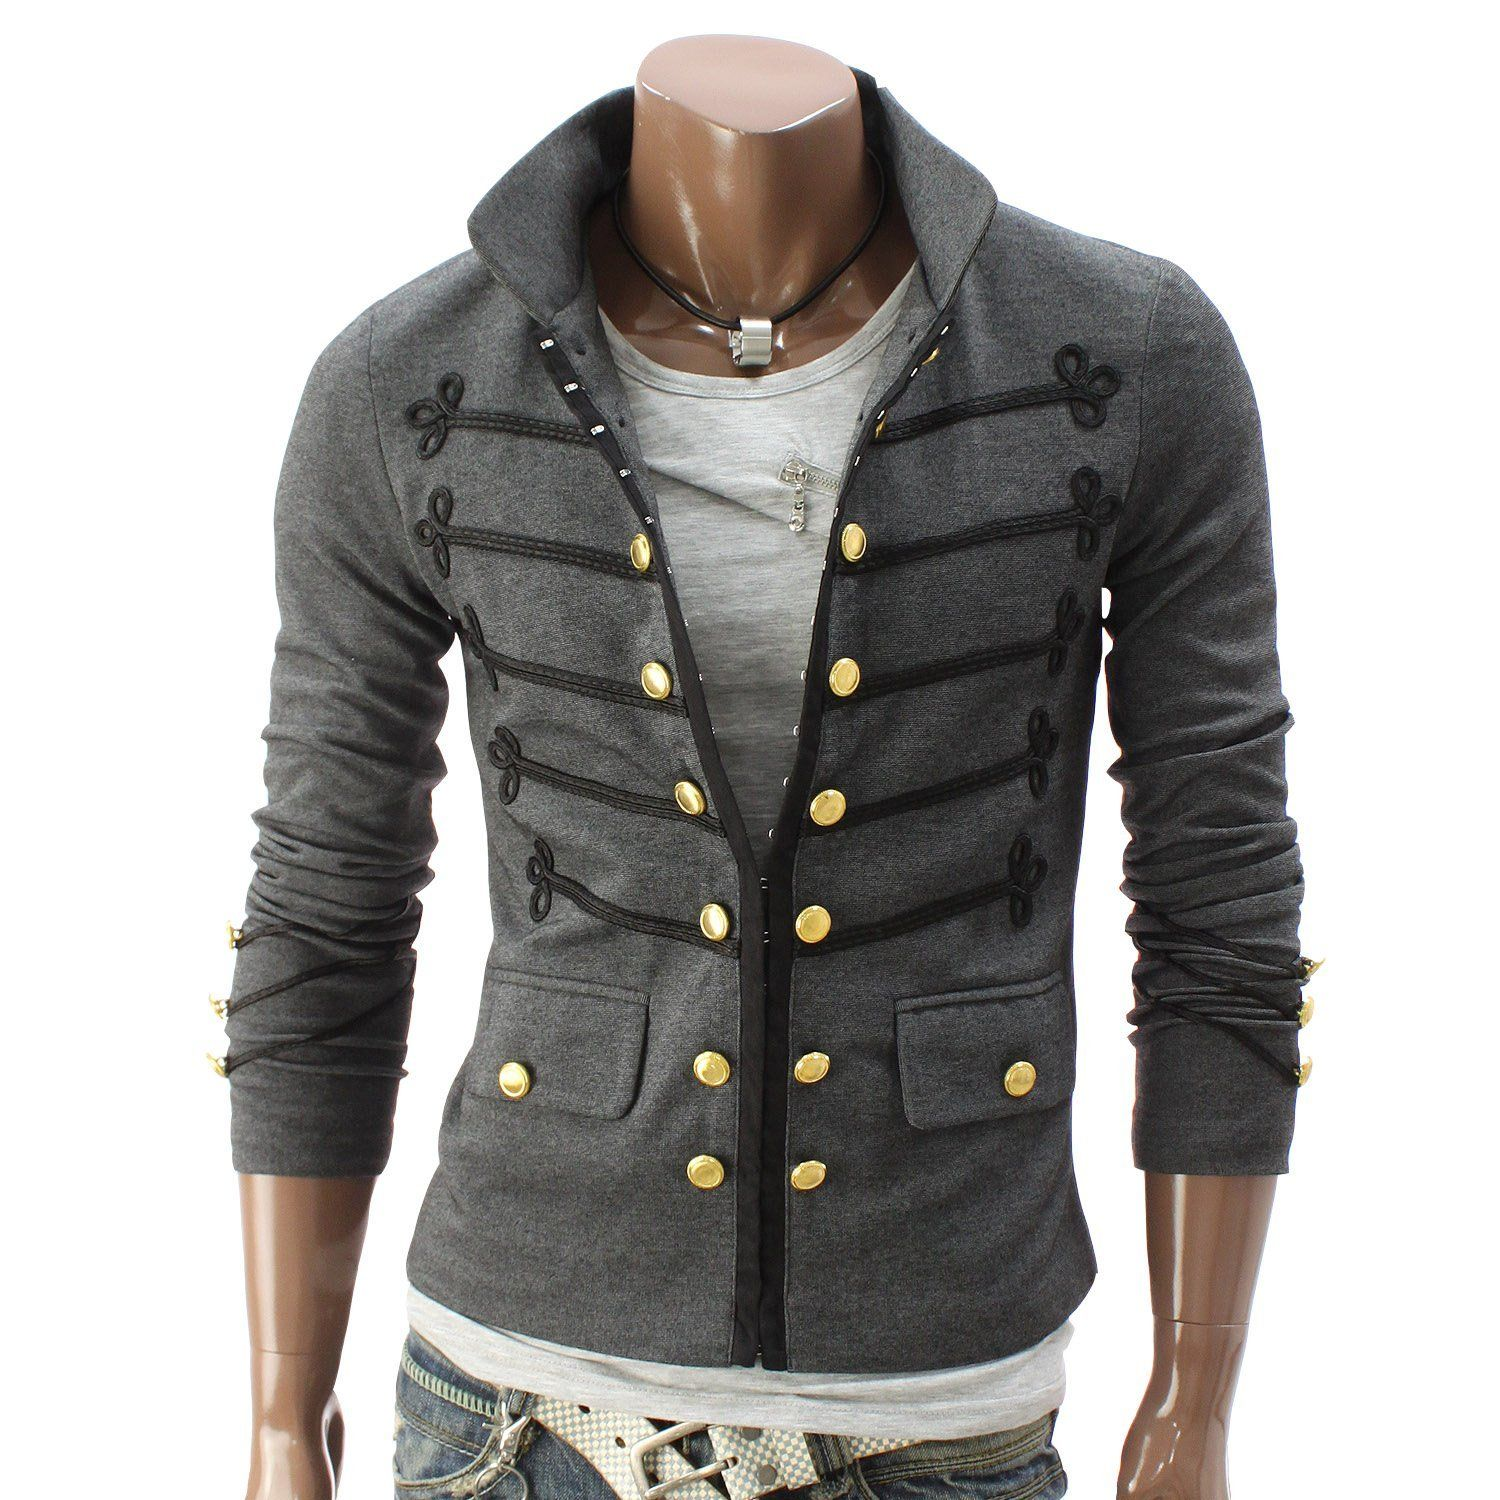 Mens jacket diagonal zipper